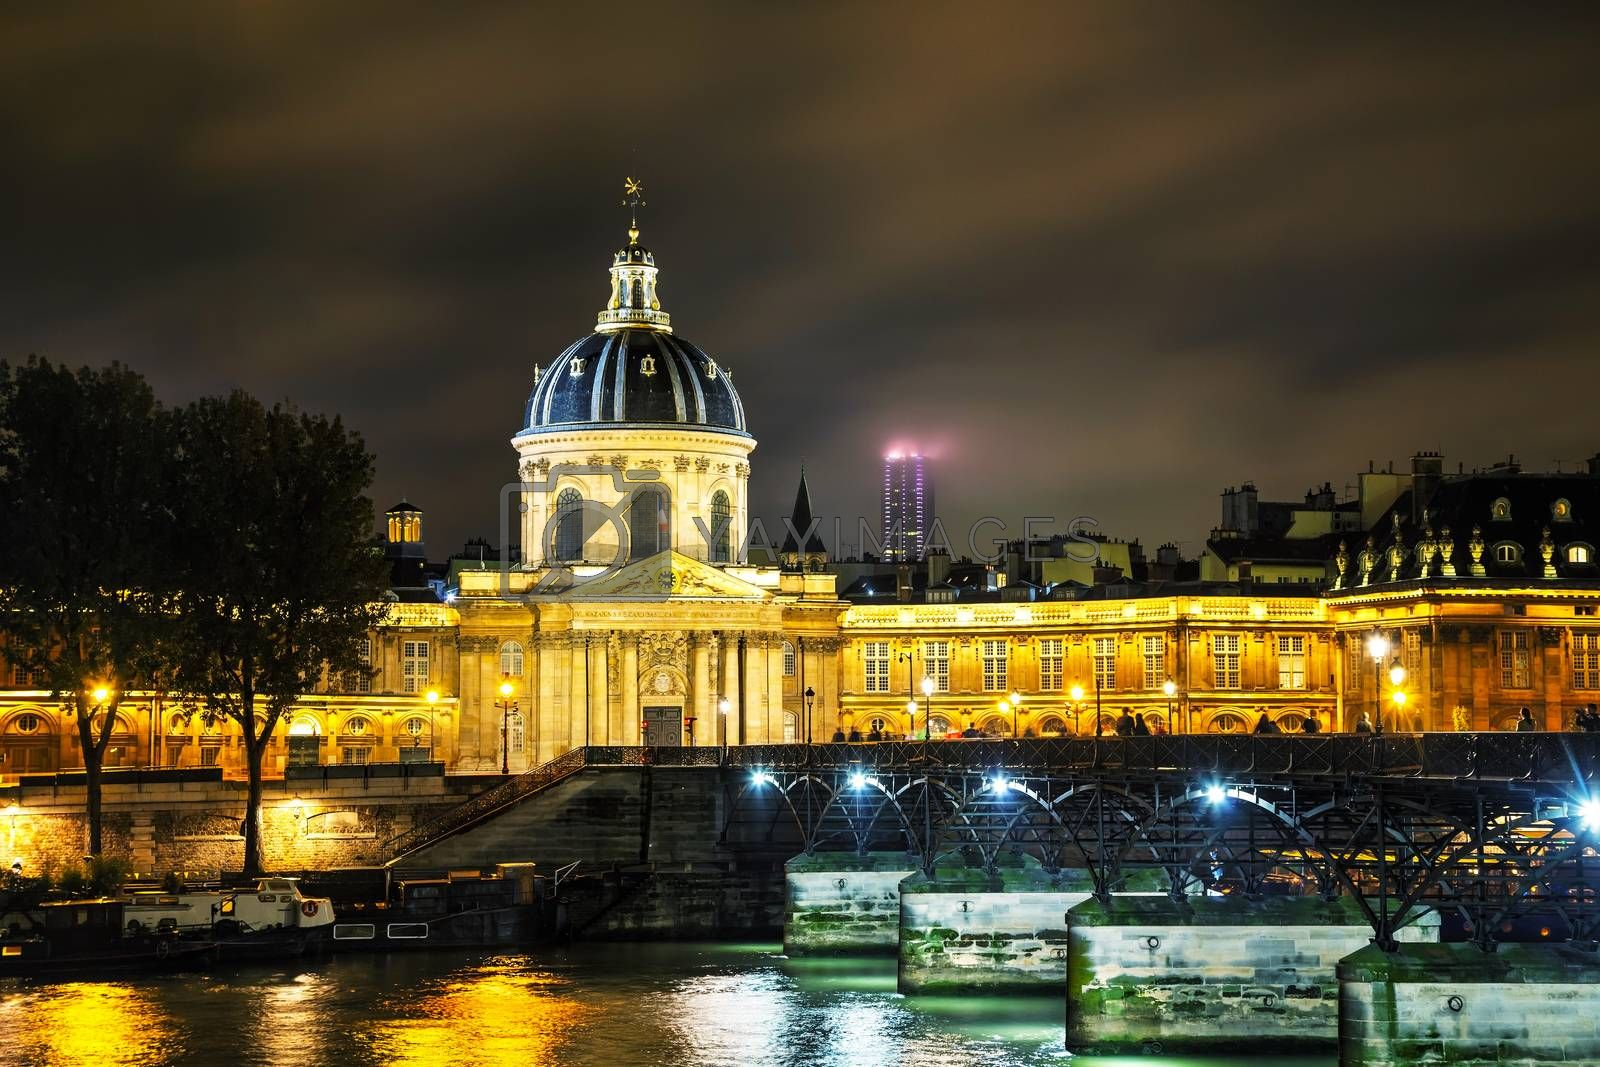 Royalty free image of Institut de France building in Paris, France by AndreyKr